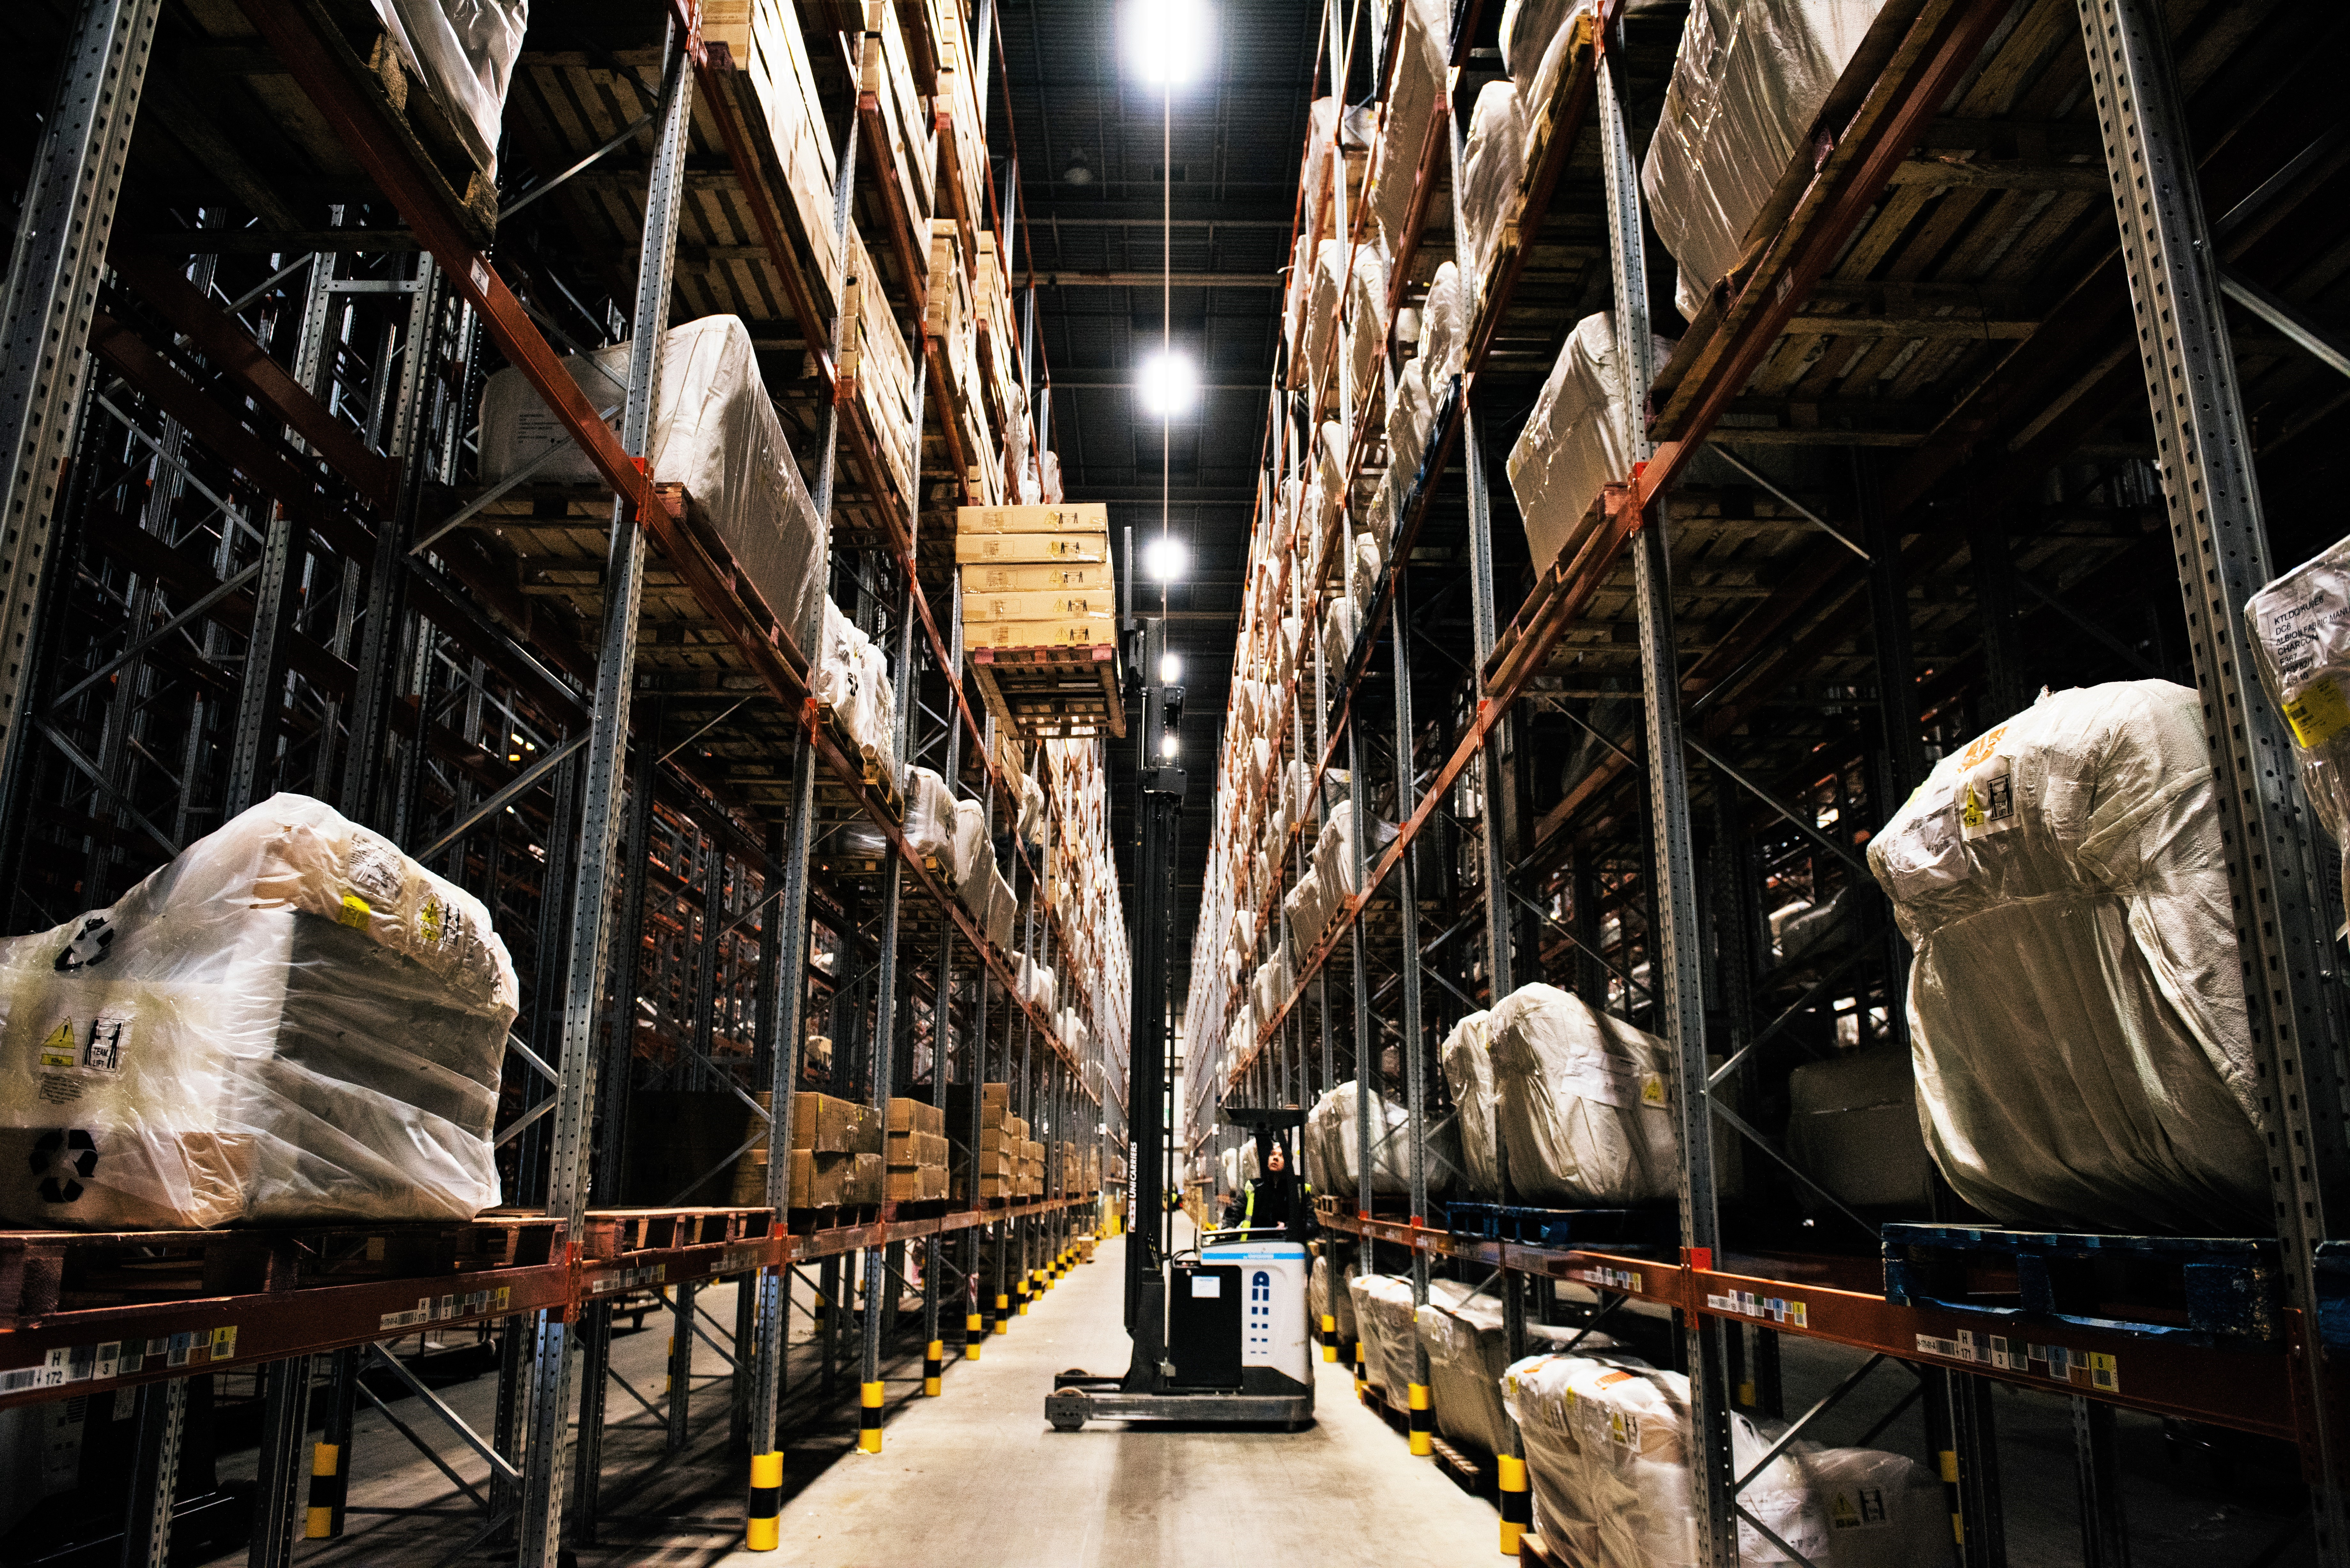 Warehouse Aisle - Picking stock.jpg (1)